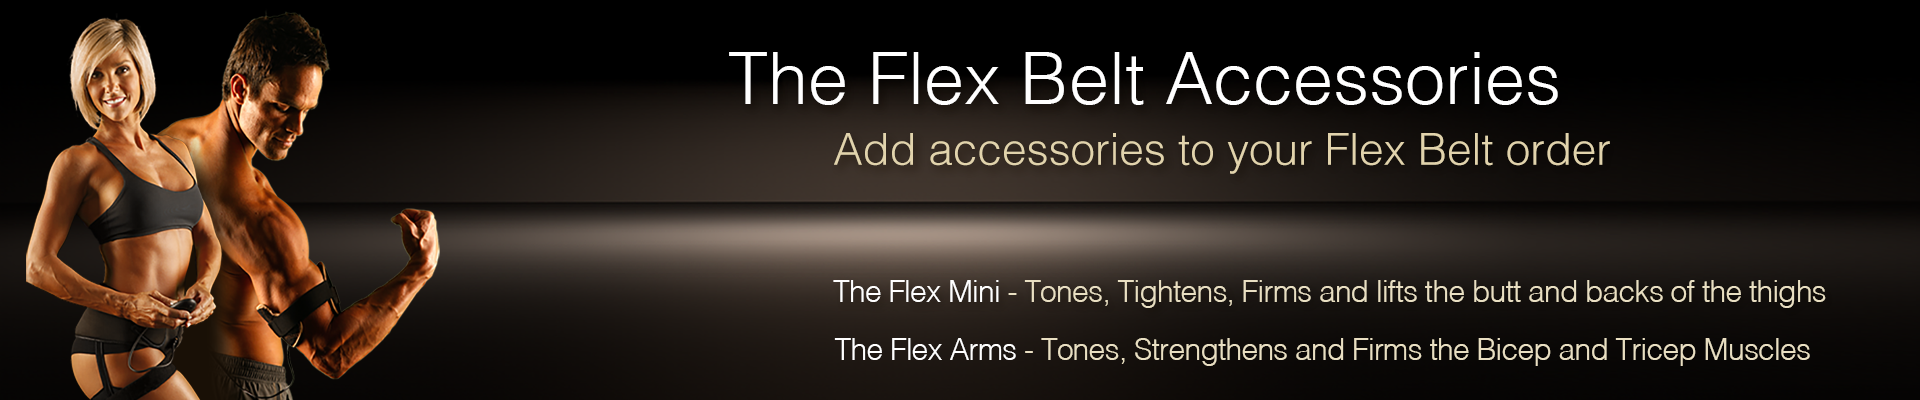 The Flex Belt Accessories